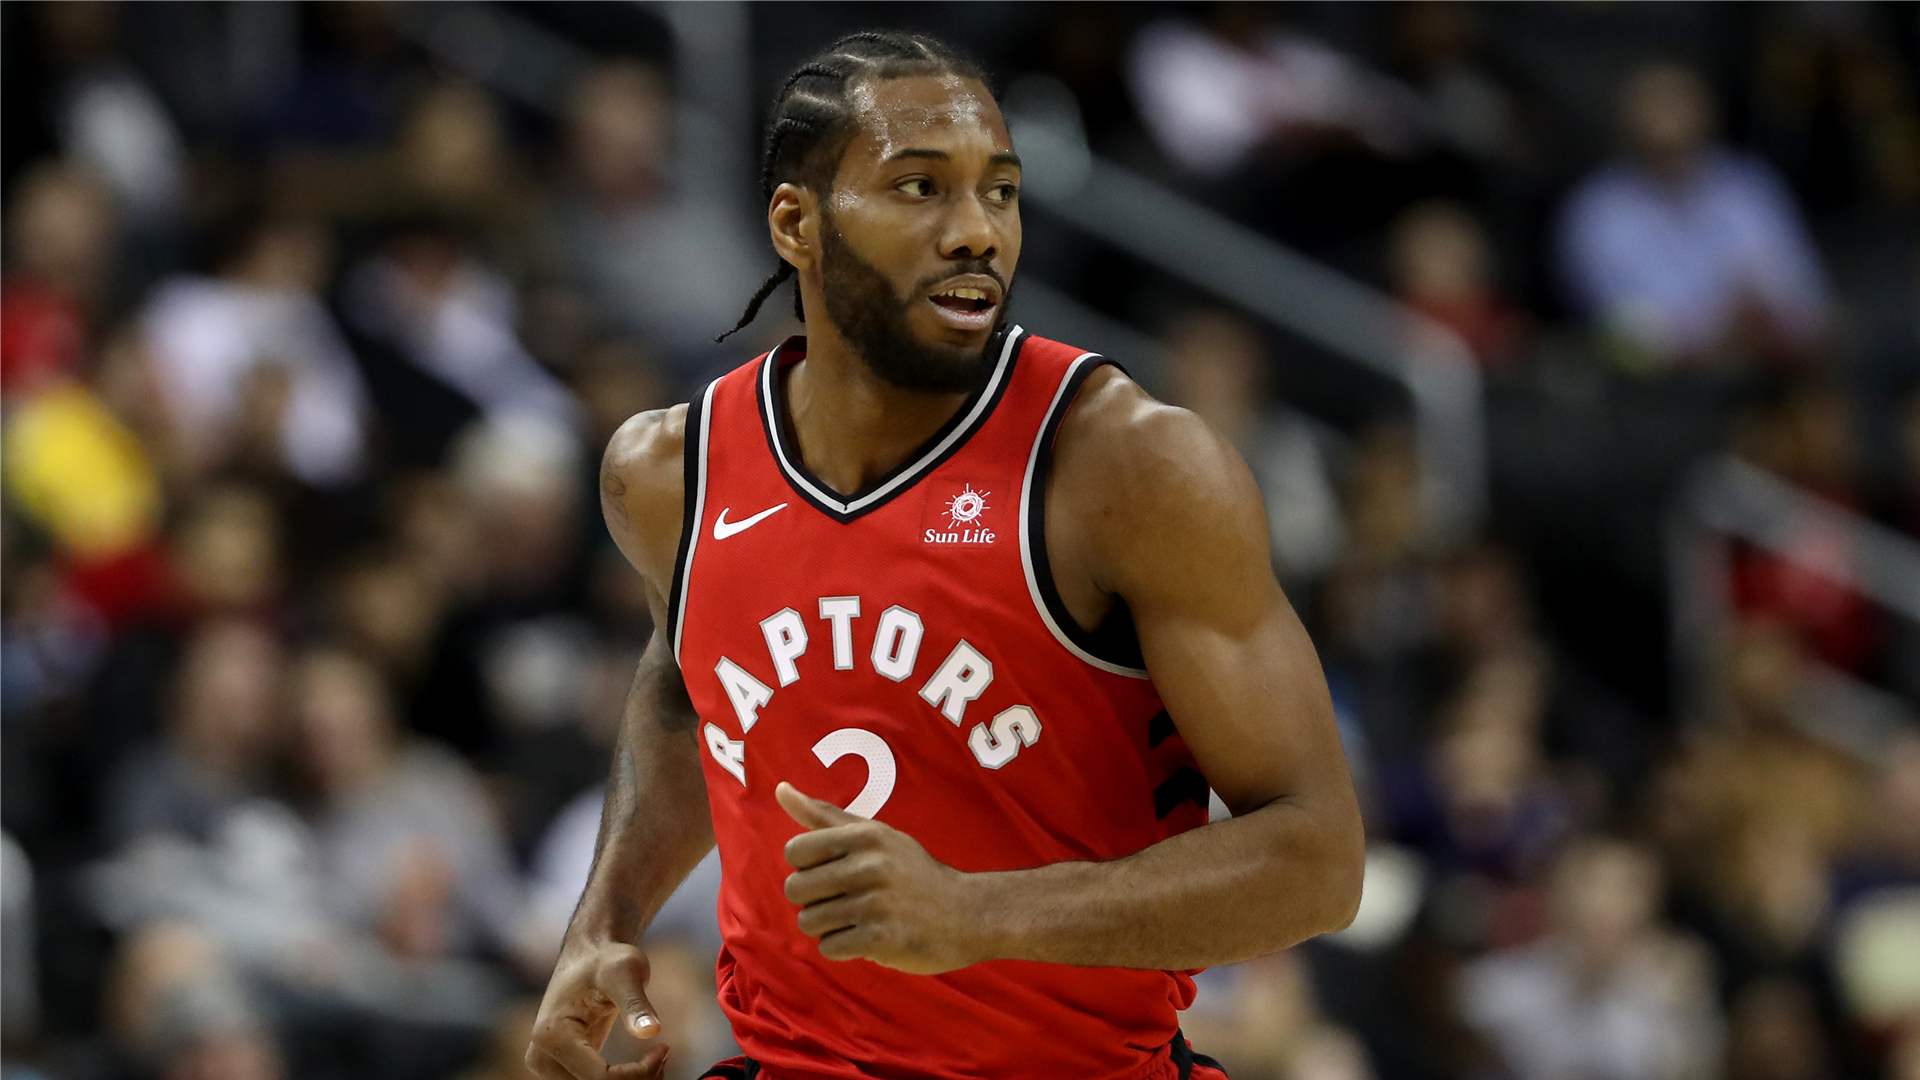 cd4472c32fb Four takeaways as the Raptors hold off the Wizards in double overtime  thriller